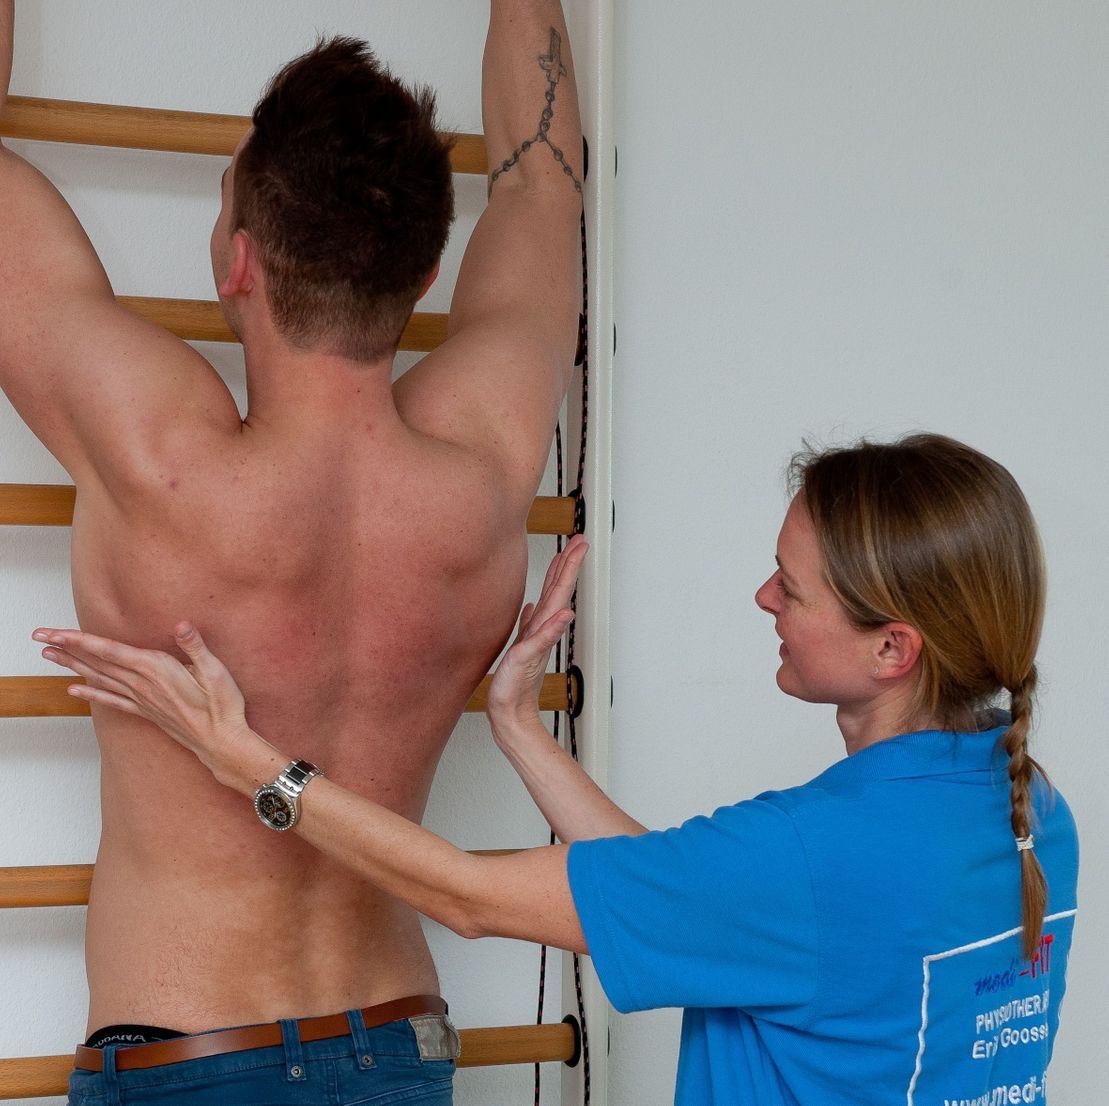 Physiotherapie5 - Physiotherapie Erik Goossens GmbH